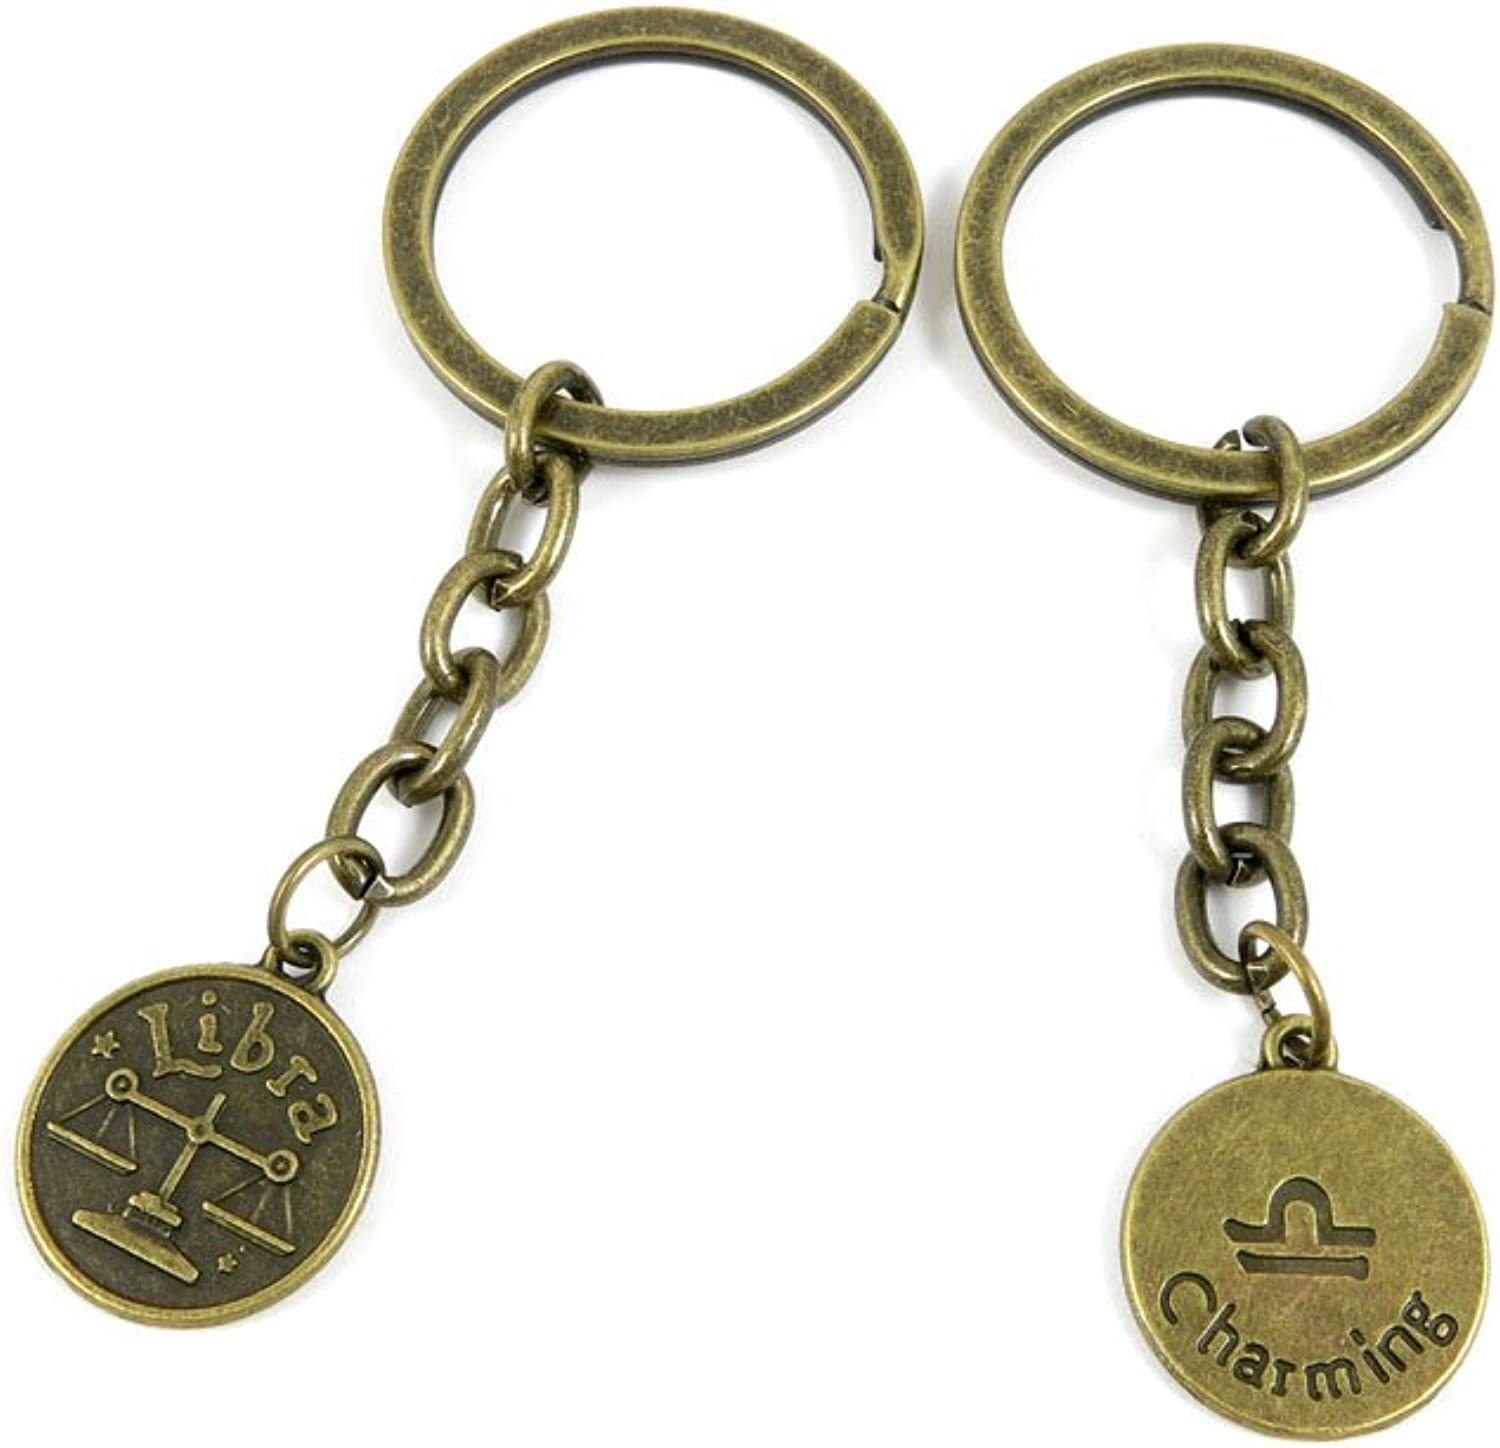 100 PCS Keyrings Keychains Key Ring Chains Tags Jewelry Findings Clasps Buckles Supplies A4ZW1 Libra